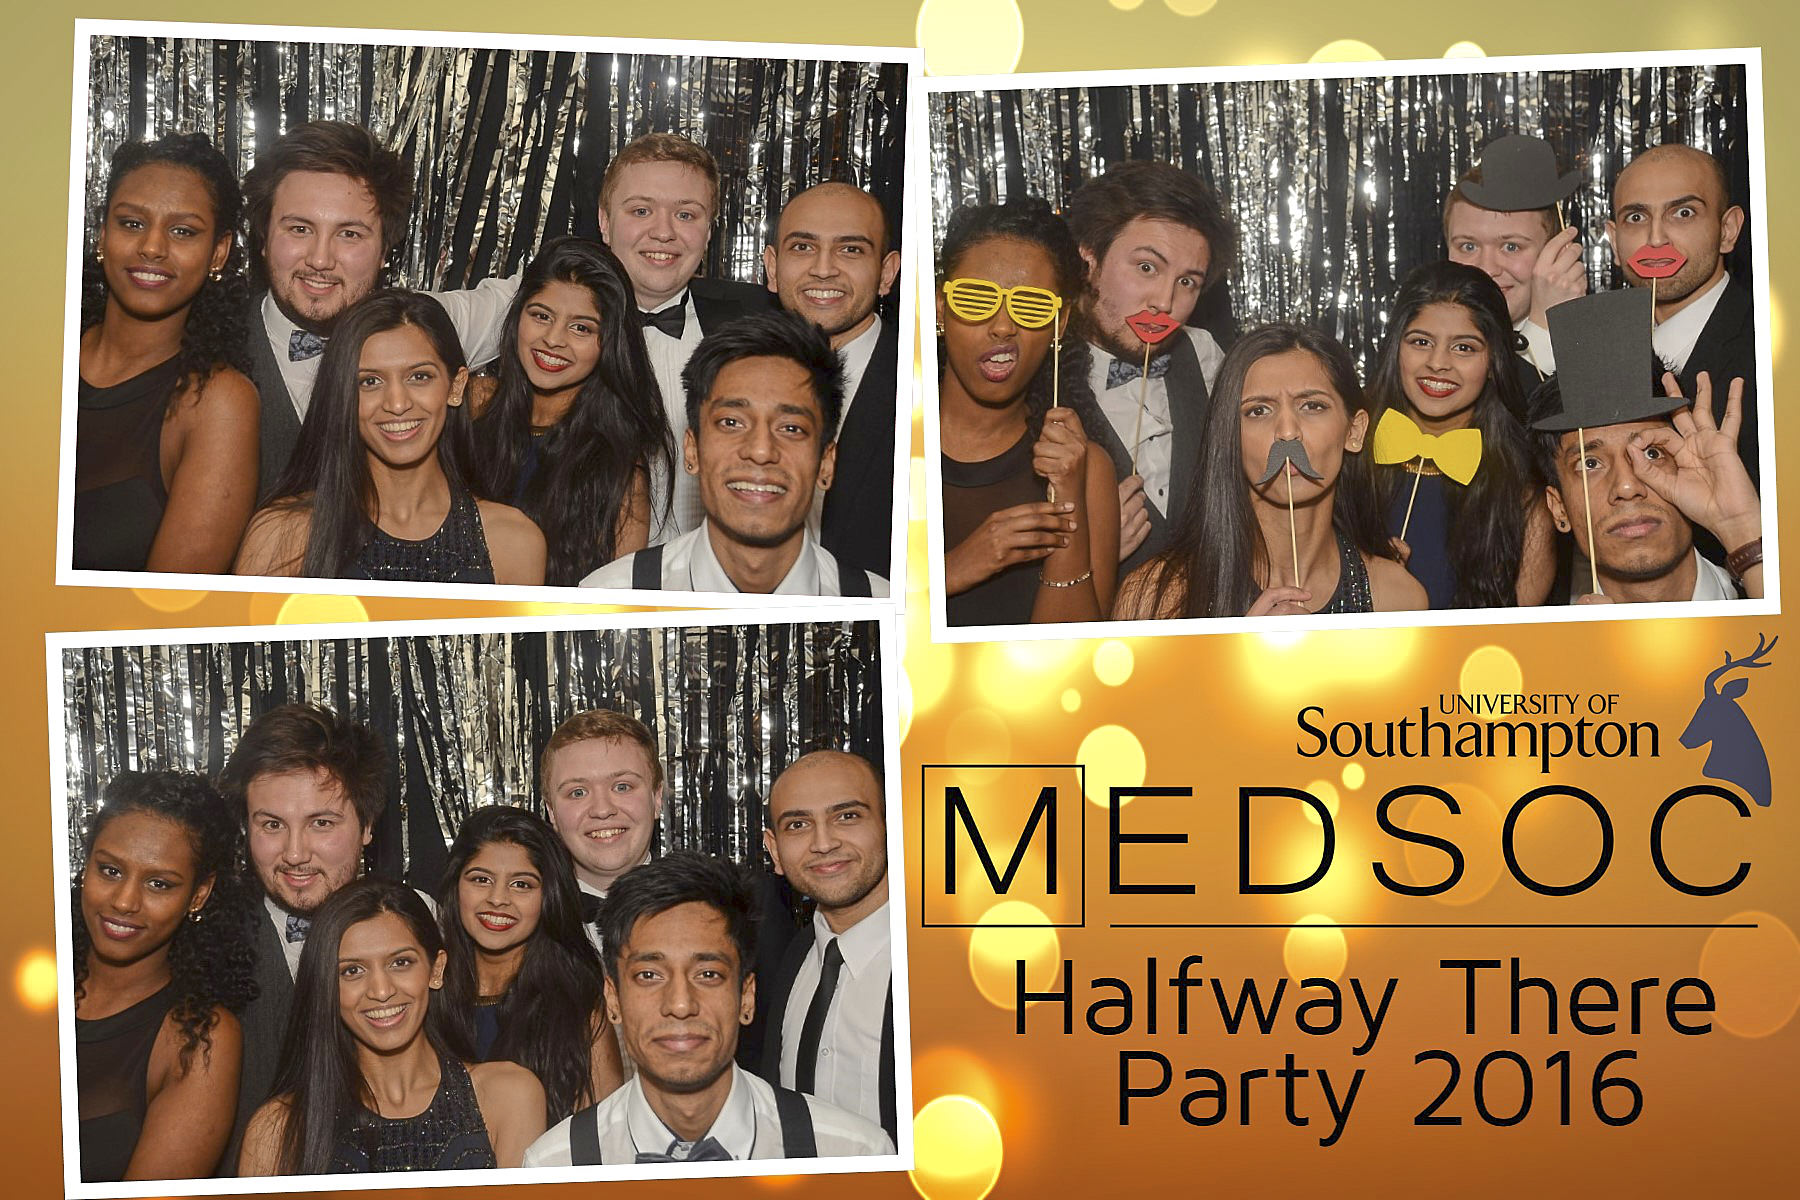 MedSoc Halfway There Party 2016 DS212325.jpg